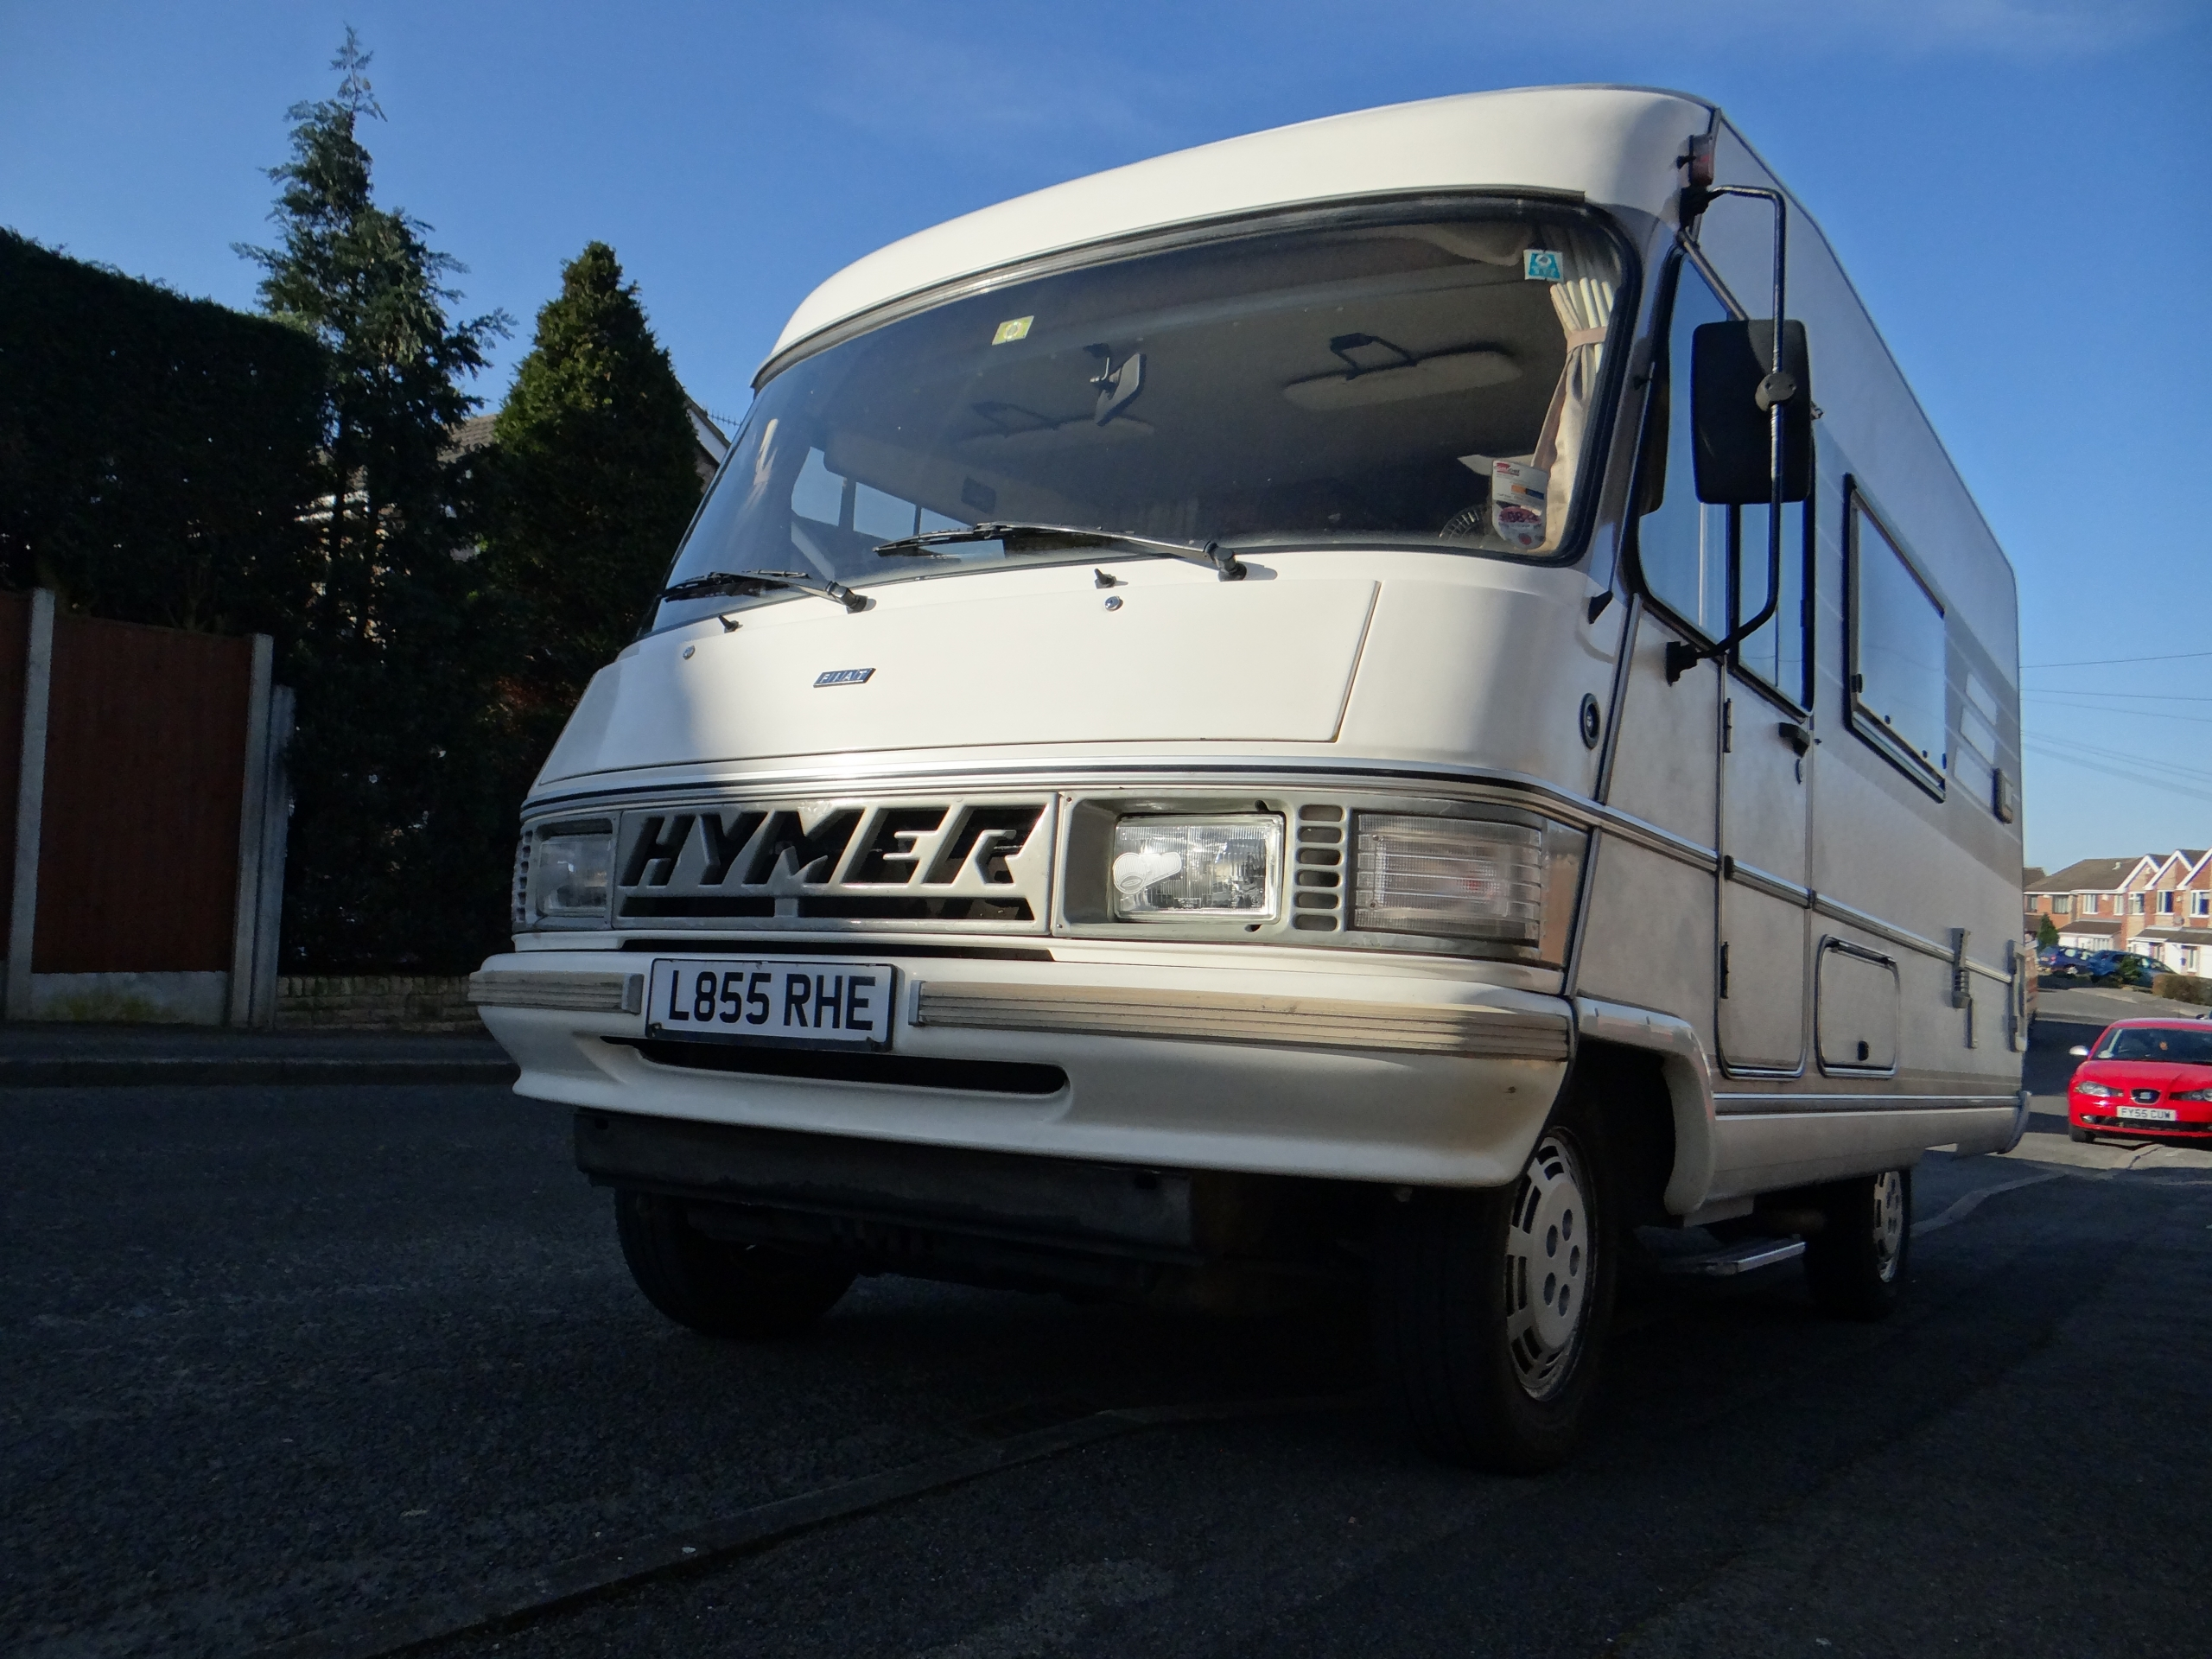 Motorhomes For Sale By Owner >> Look inside: Our Hymer B544 2001 Motorhome: Zagan - The Our Tour Travel Blog